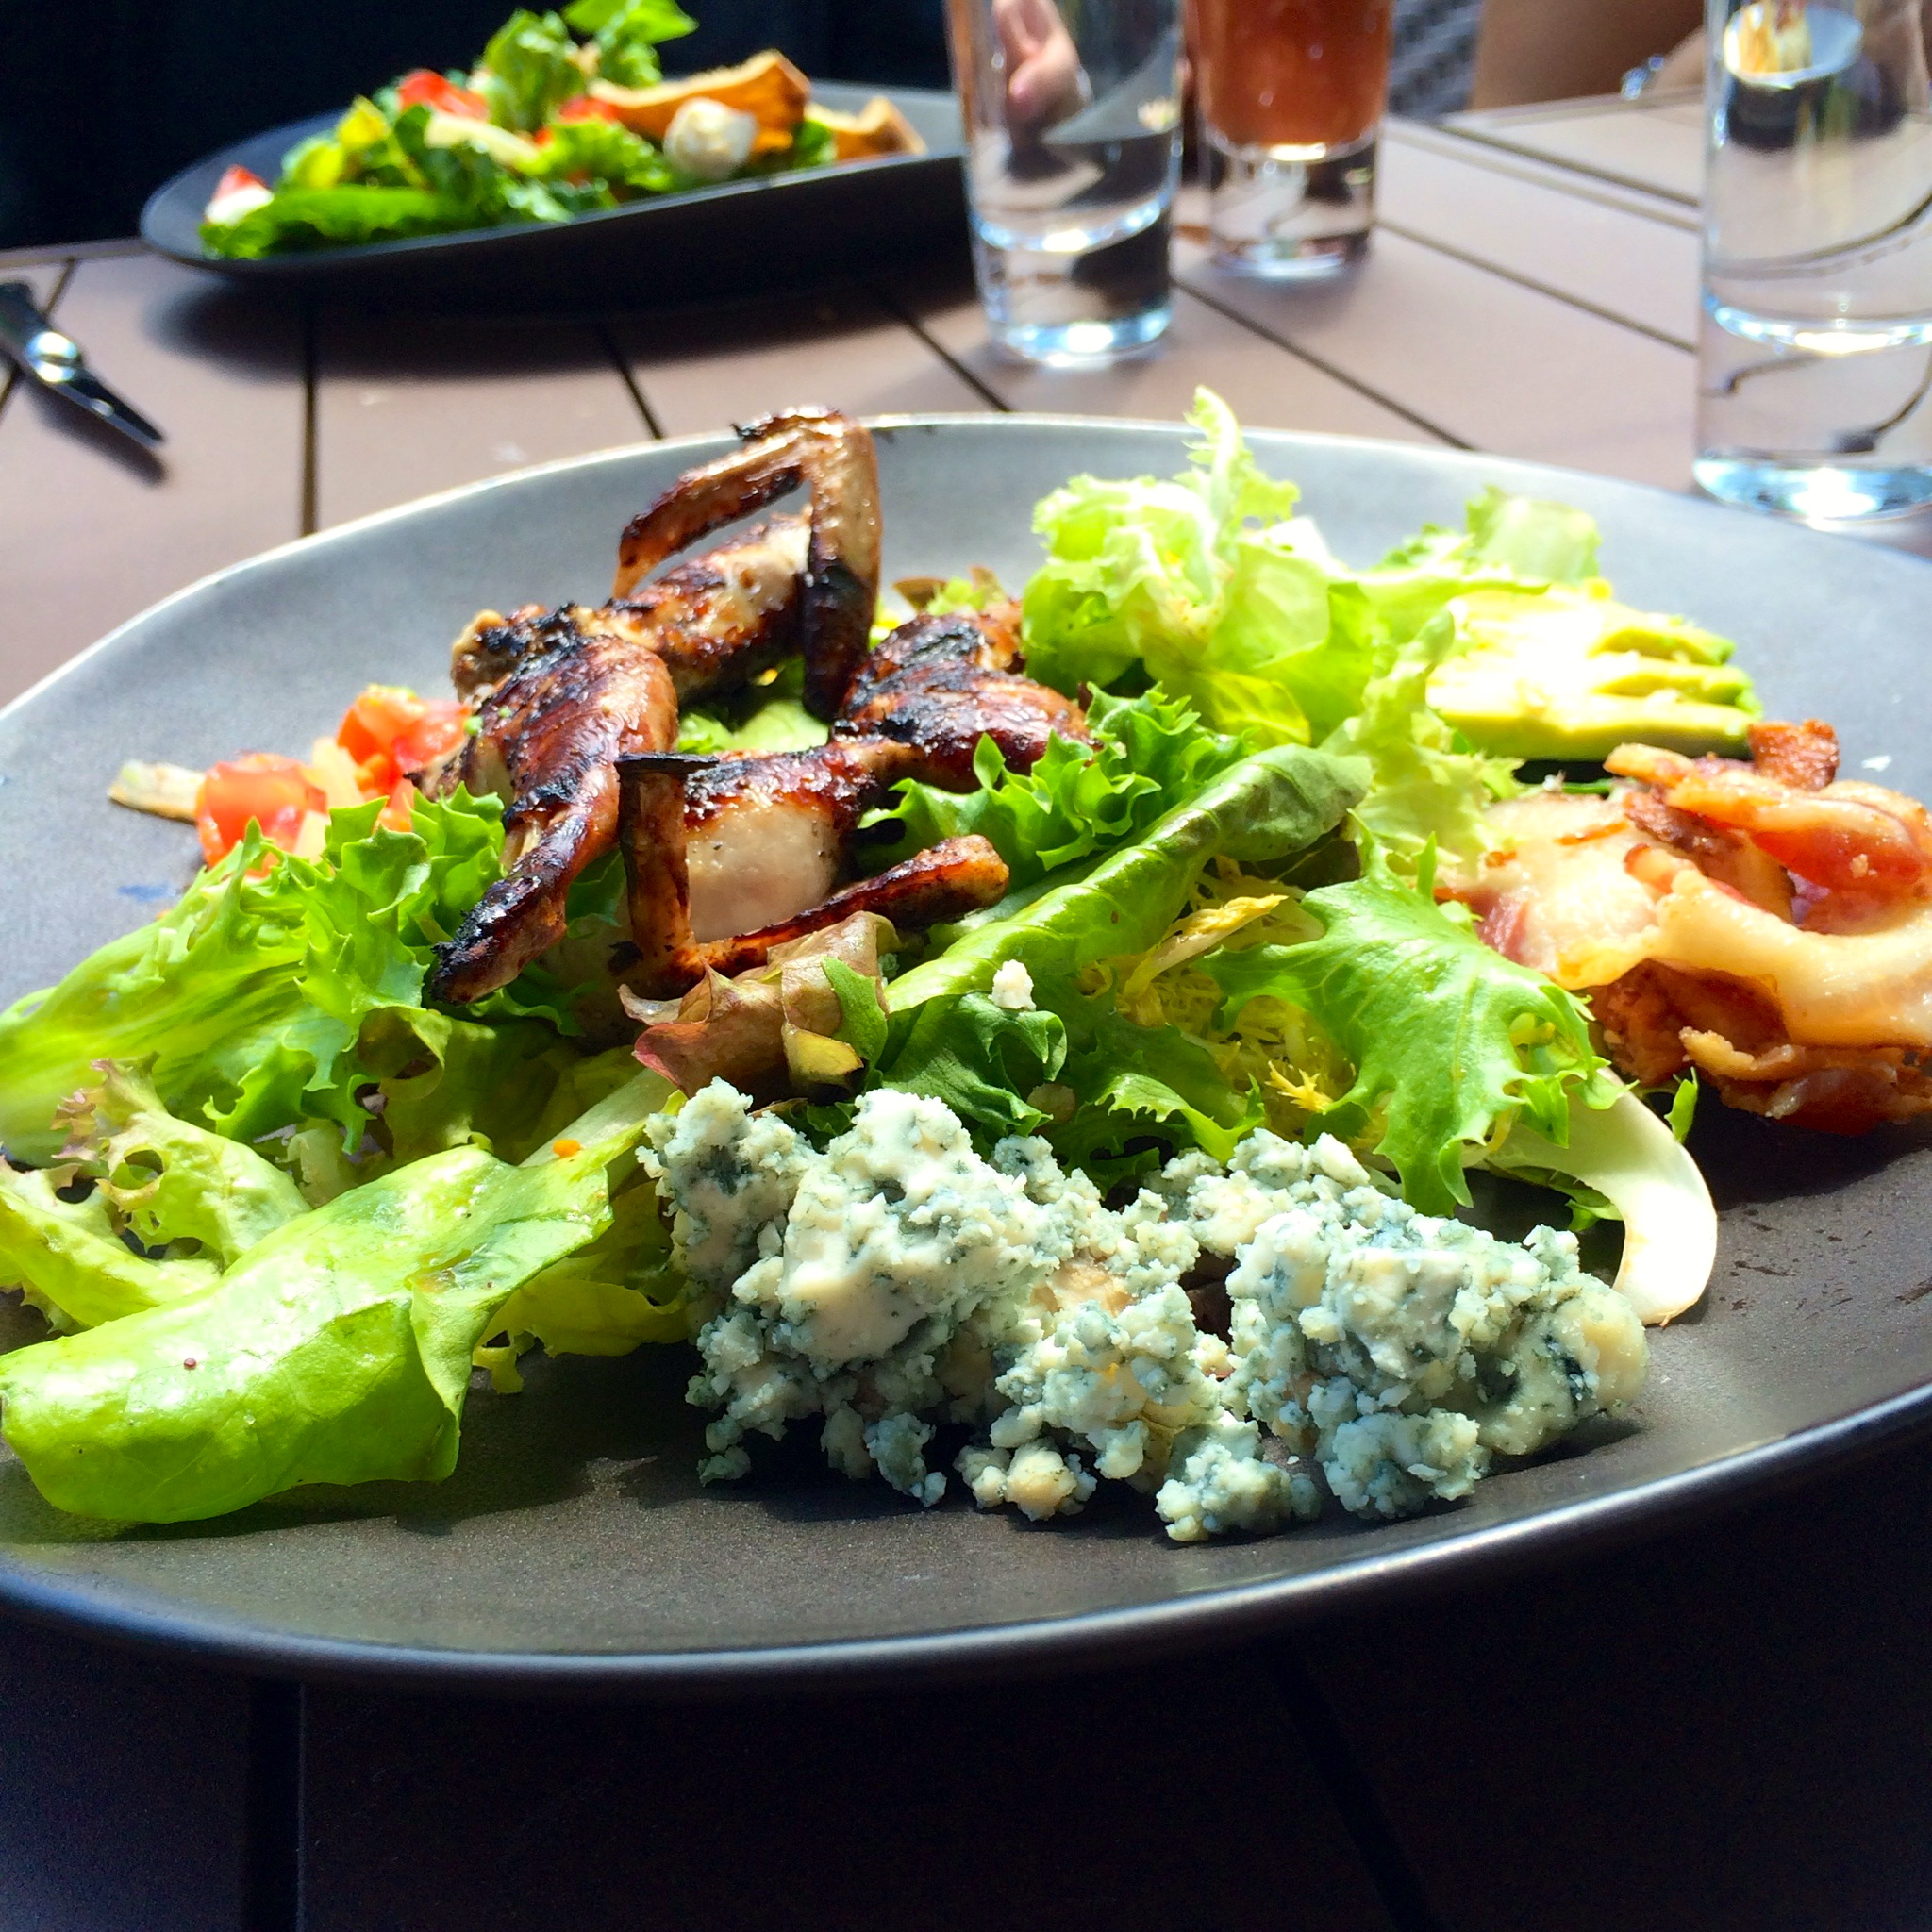 Cobb salad with grilled quail at Tavern on the Green in Central Park.